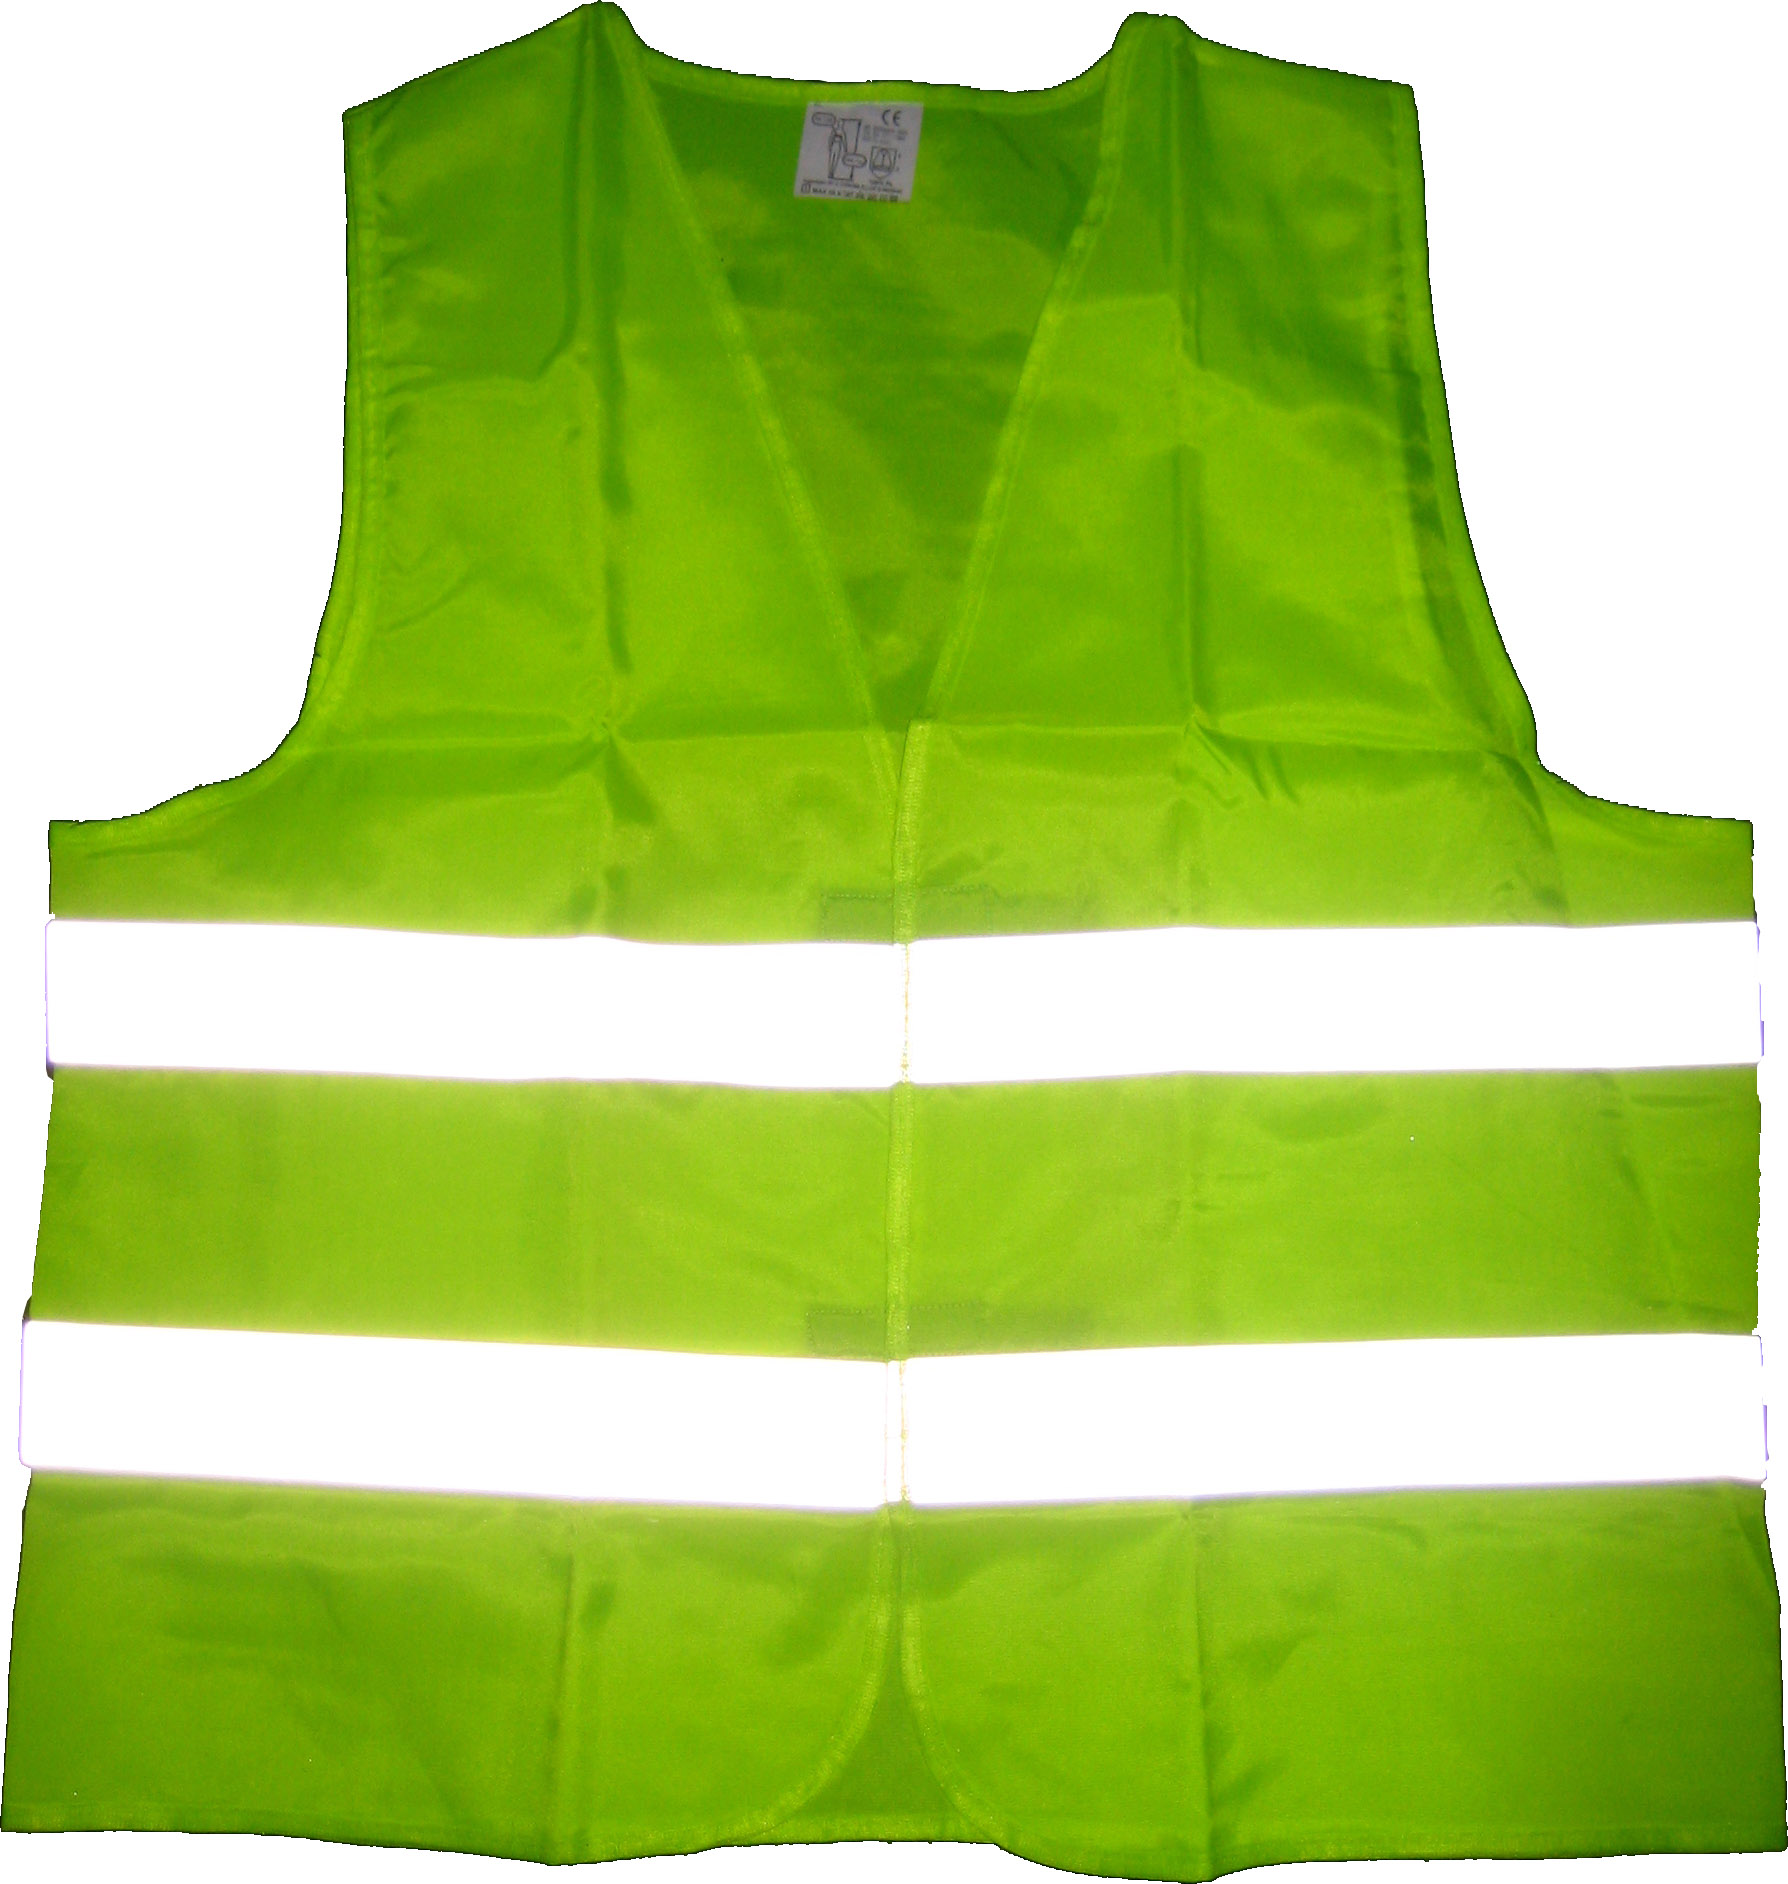 High-visibility clothing - Wikipedia 143c31cb9